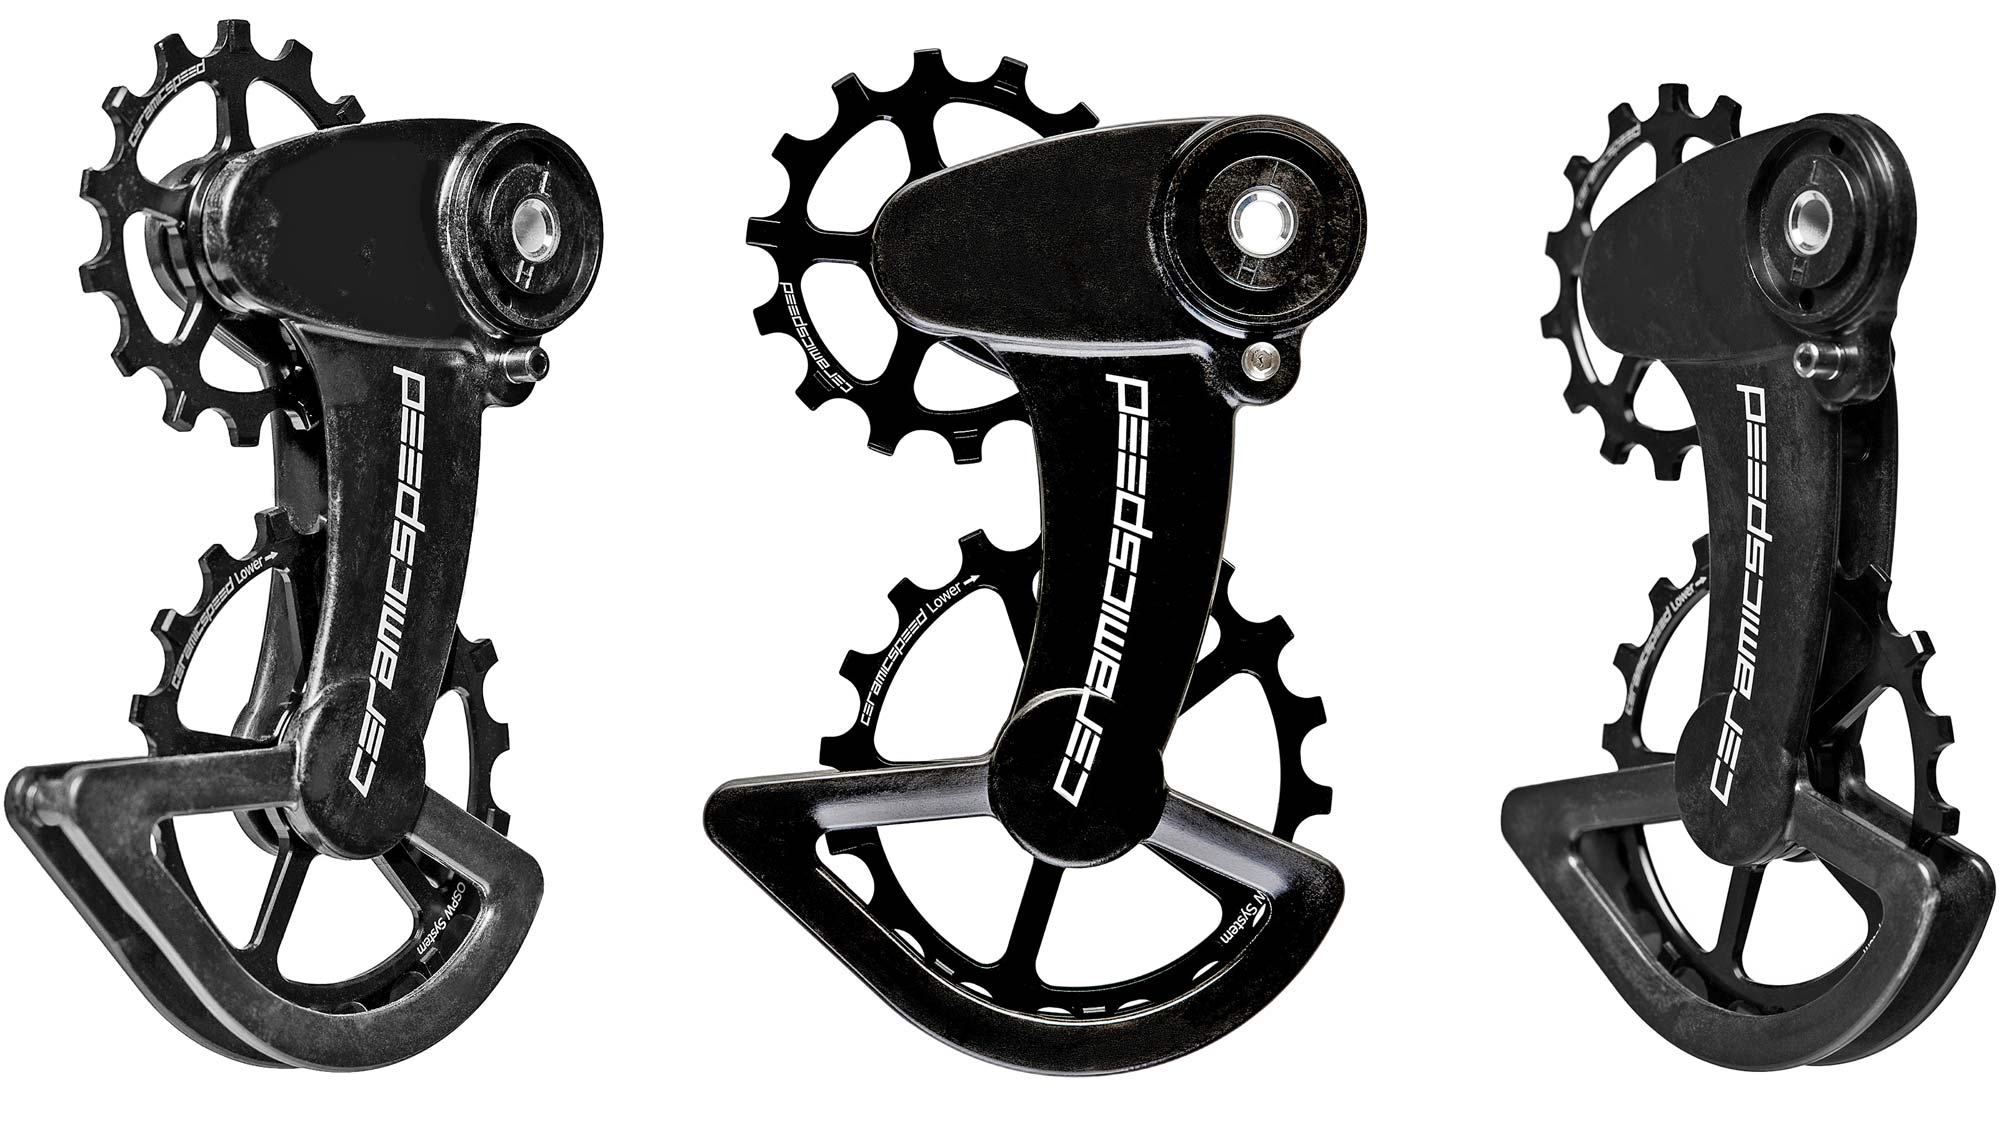 CeramicSpeed OSPW X oversized pulley wheel system CX cross cyclocross & gravel road bikes SRAM Rival Force ceramic bearings